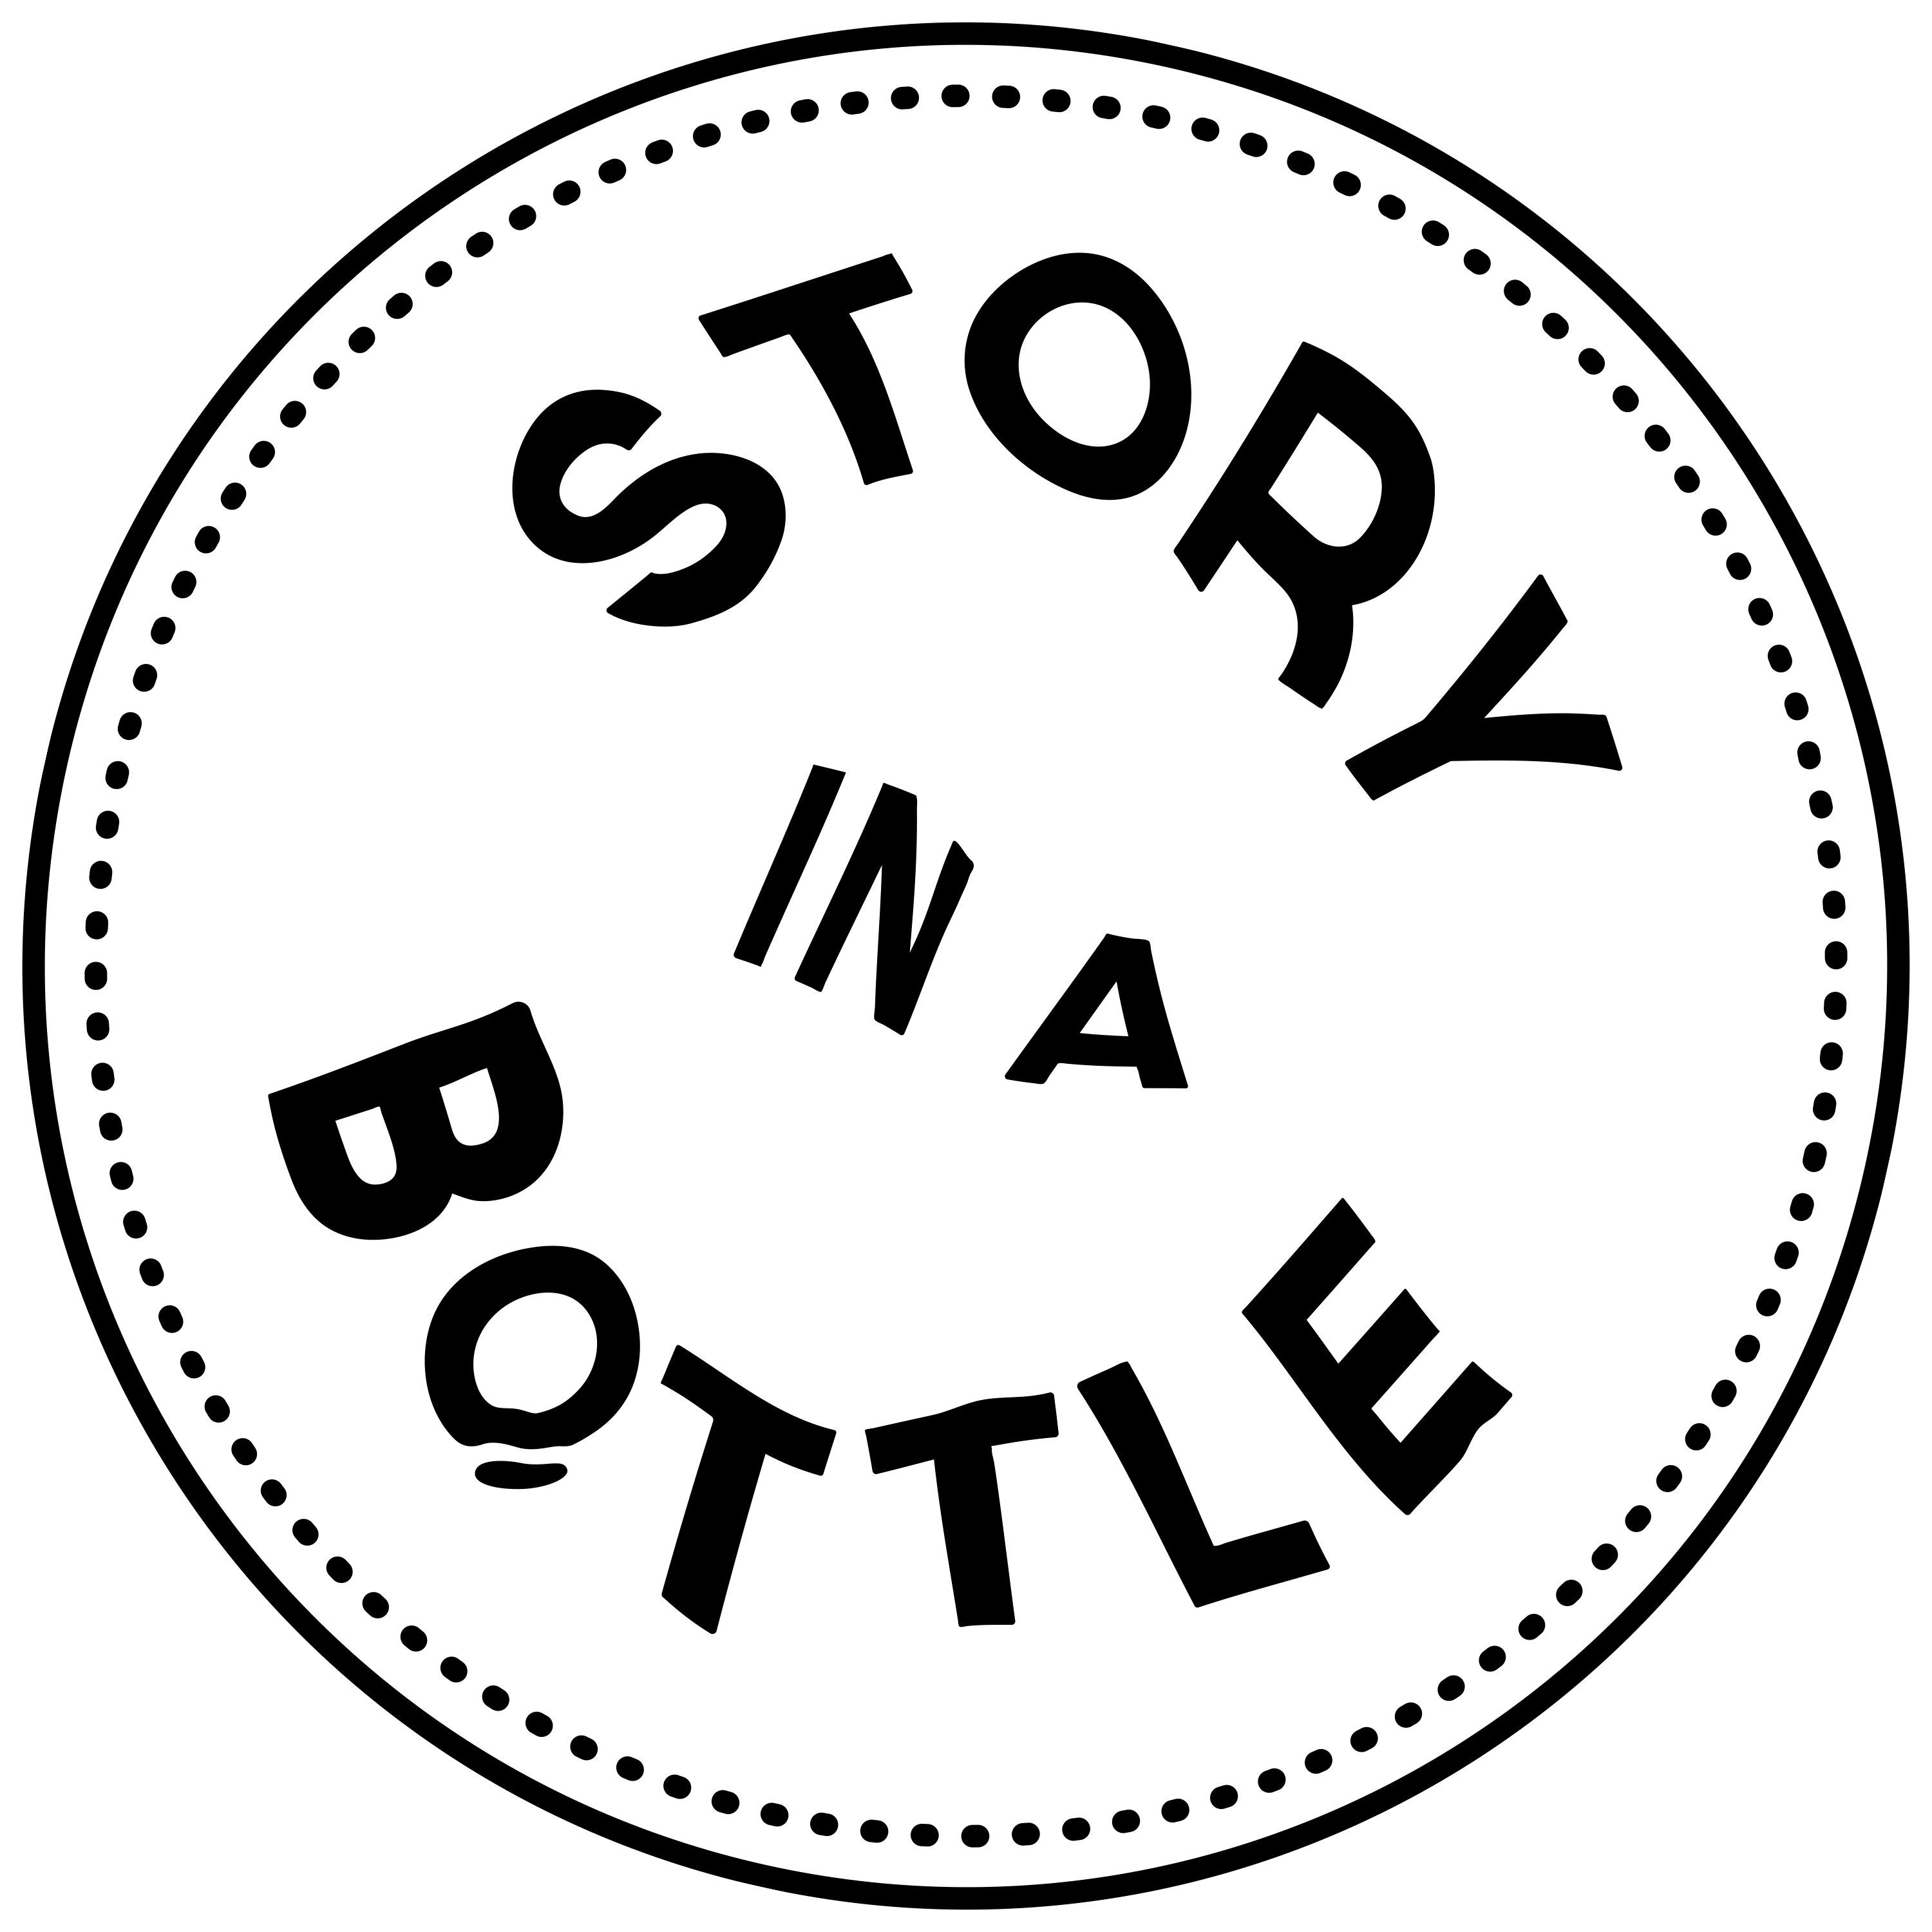 Story in a Bottle